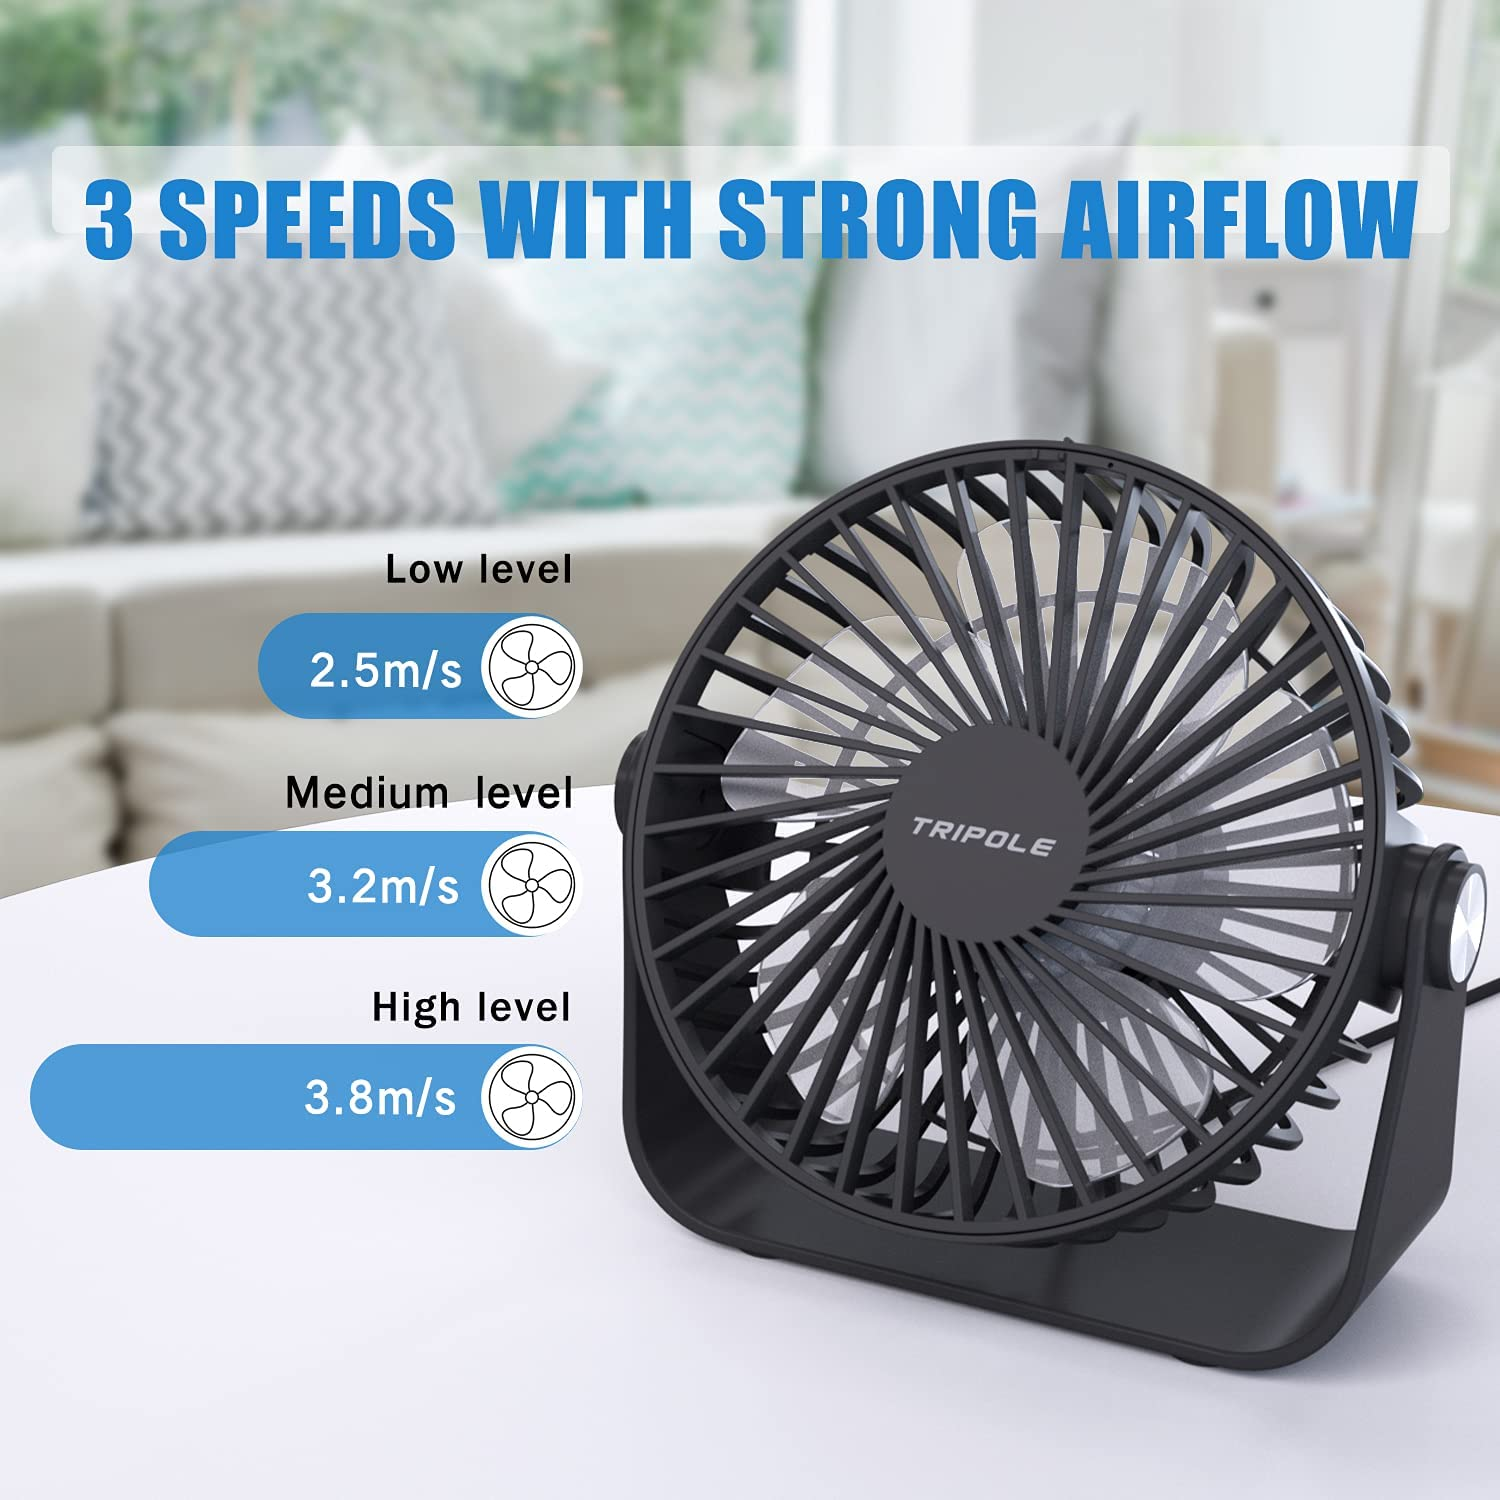 TriPole USB Desk Fan Mini Portable Fan with Strong Airflow Small Table Fan 3 speeds 360°Rotatable Personal Fan for Desktop Home Office Bedroom Camping Outdoor,5.1Inch,4.9ft Cable